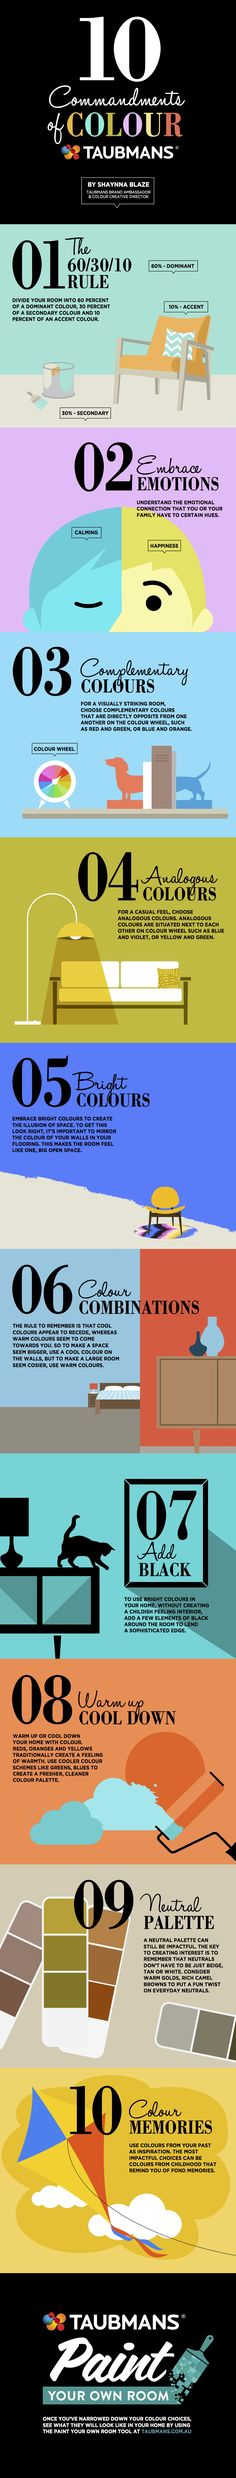 Taubmans 10 Commandments of Colour Infographic